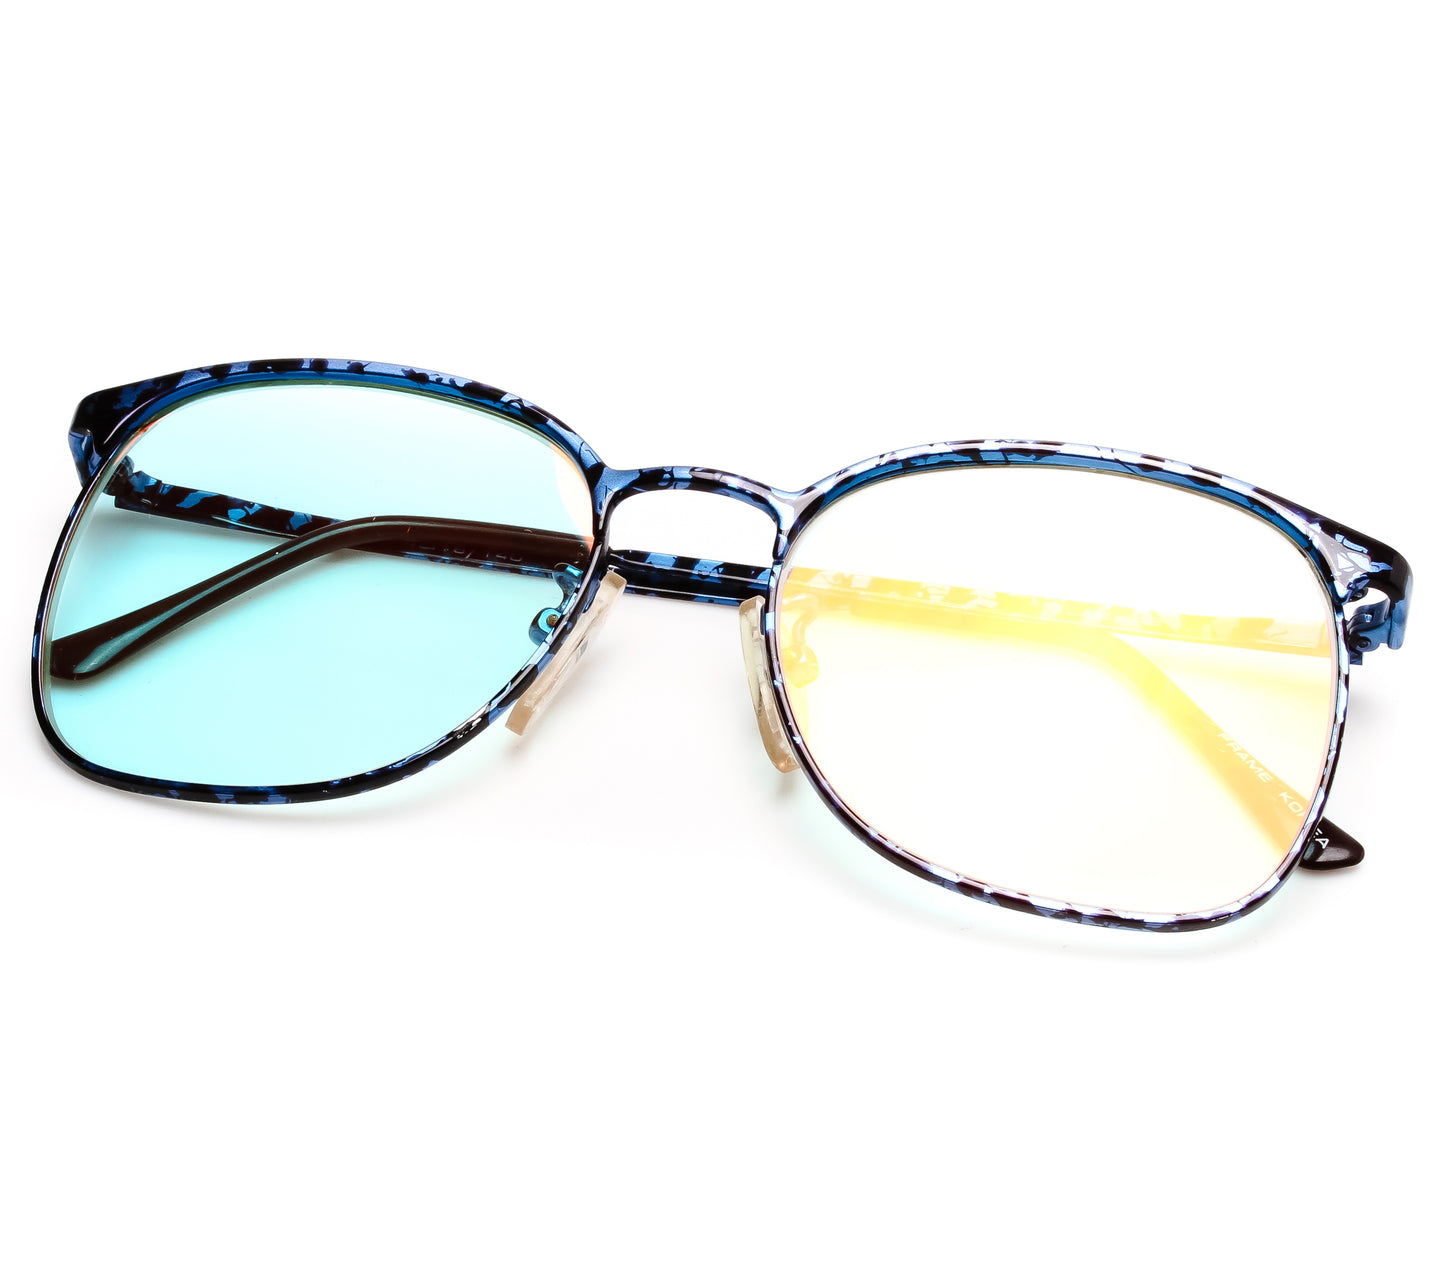 VF by Vintage Frames 90210 Blue Marble Thumbnail, VF by Vintage Frames , glasses frames, eyeglasses online, eyeglass frames, mens glasses, womens glasses, buy glasses online, designer eyeglasses, vintage sunglasses, retro sunglasses, vintage glasses, sunglass, eyeglass, glasses, lens, vintage frames company, vf